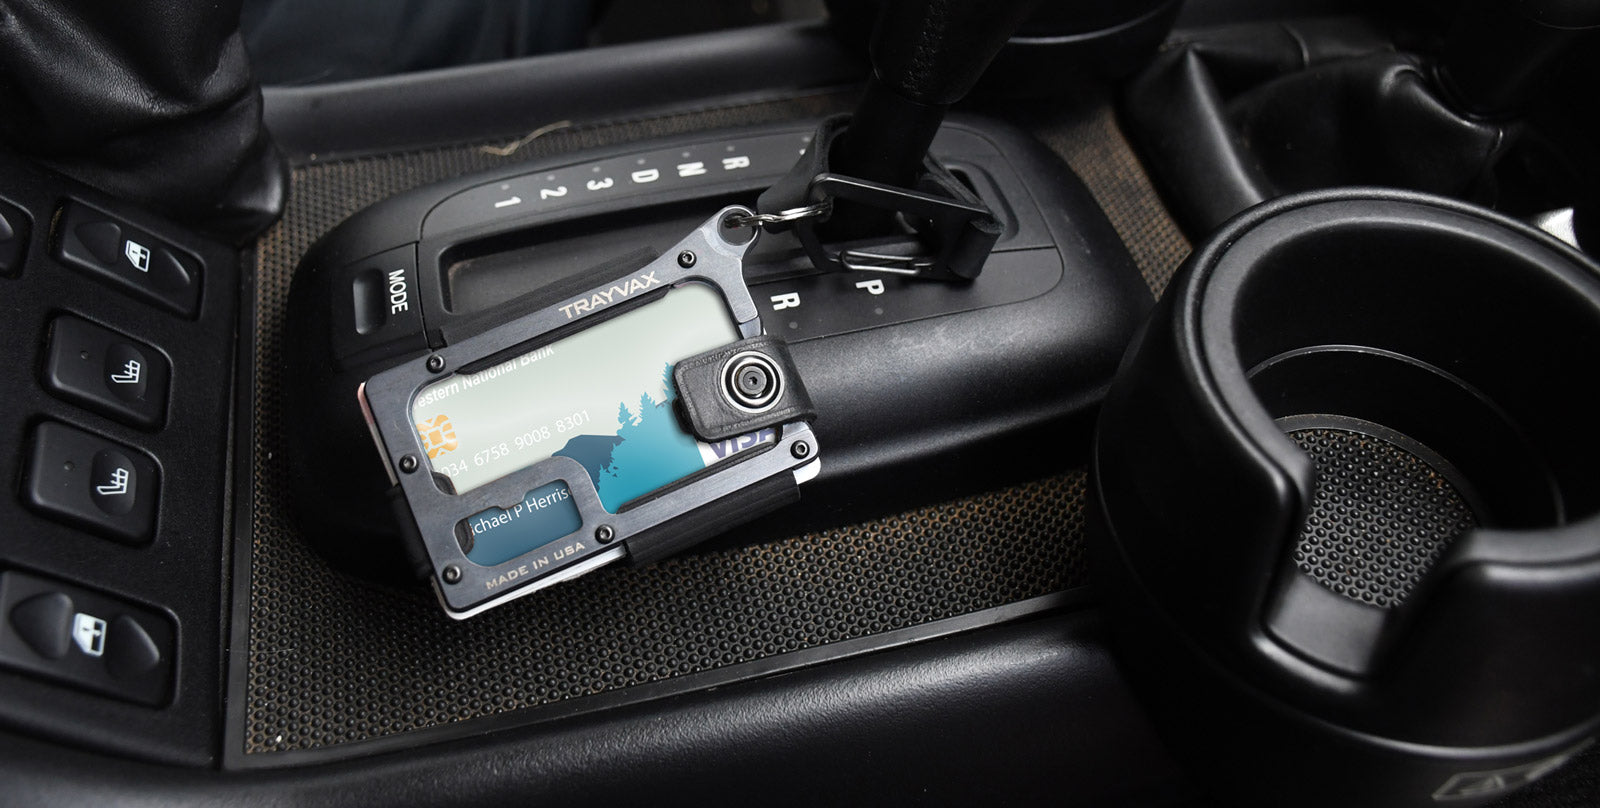 The Trayvax Contour wallet sitting inside of a truck.